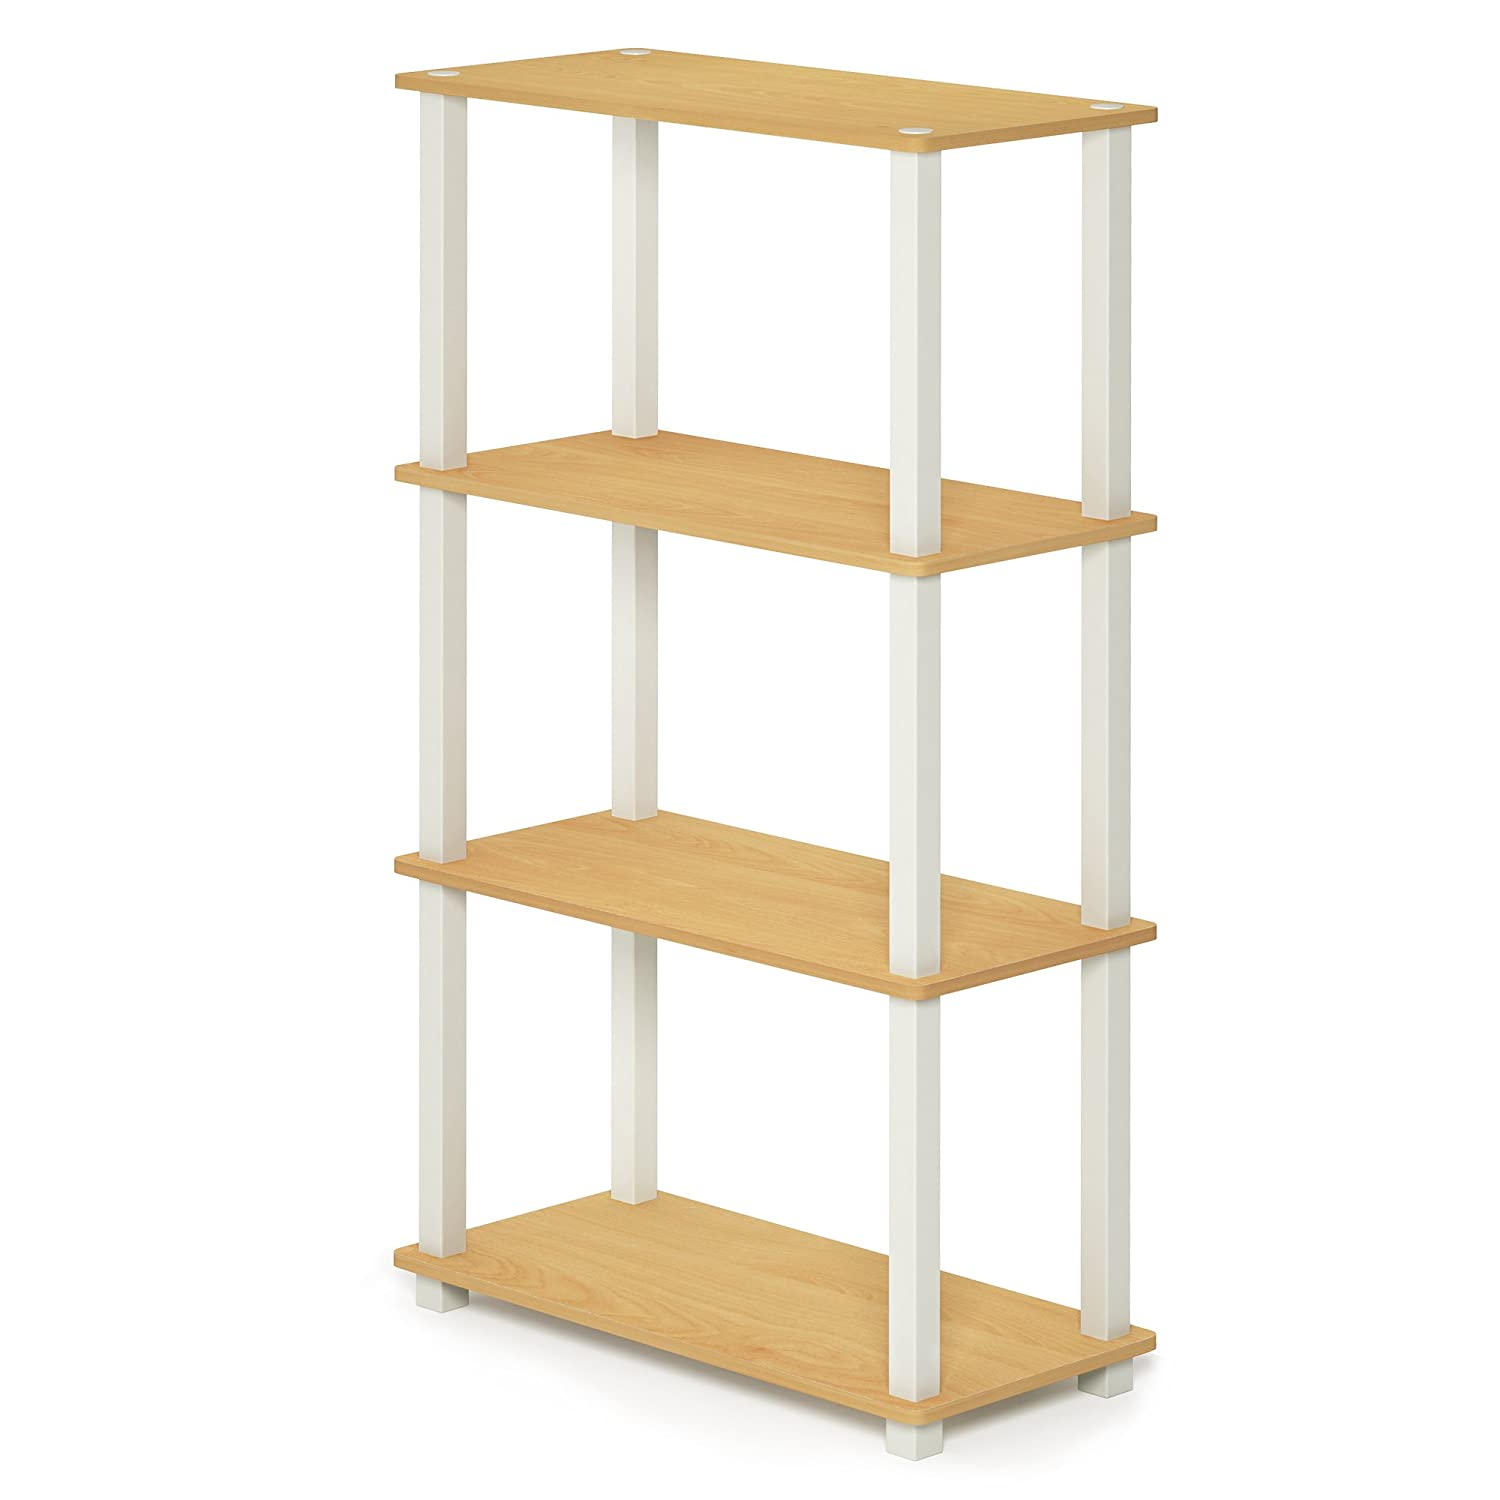 Beech White 4-Tier Square Tubes Furinno 17091BE WH Turn-N-Tube 5-Tier Compact Multipurpose Shelf, Single, Beech White